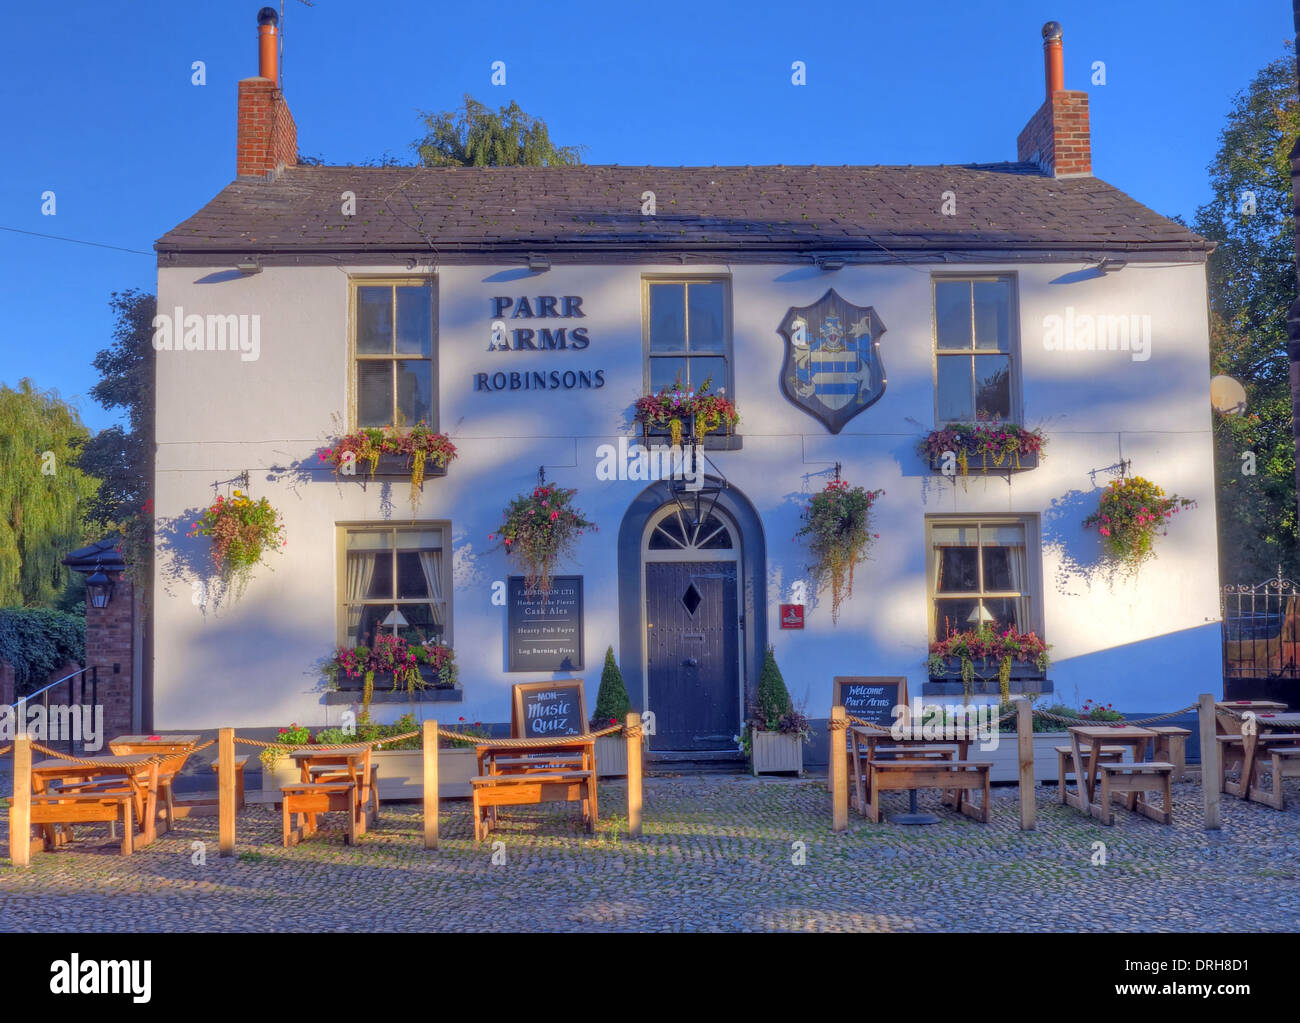 Cheshire,North,West,England,UK,pubs,classic,historic,lovely,pretty,in,summer,blue,sky,CAMRA,Robinson,Robinsons,brewery,Stockport,south,bar,bars,English,real,ale,beer,beers,food,wine,building,buildings,outside,seats,seating,bench,bences,cobbled,area,part,place,village,st,Wilfrids,cask,ales,WA43EP,Gotonysmith WA4 3EP,Warringtonians,Buy Pictures of,Buy Images Of